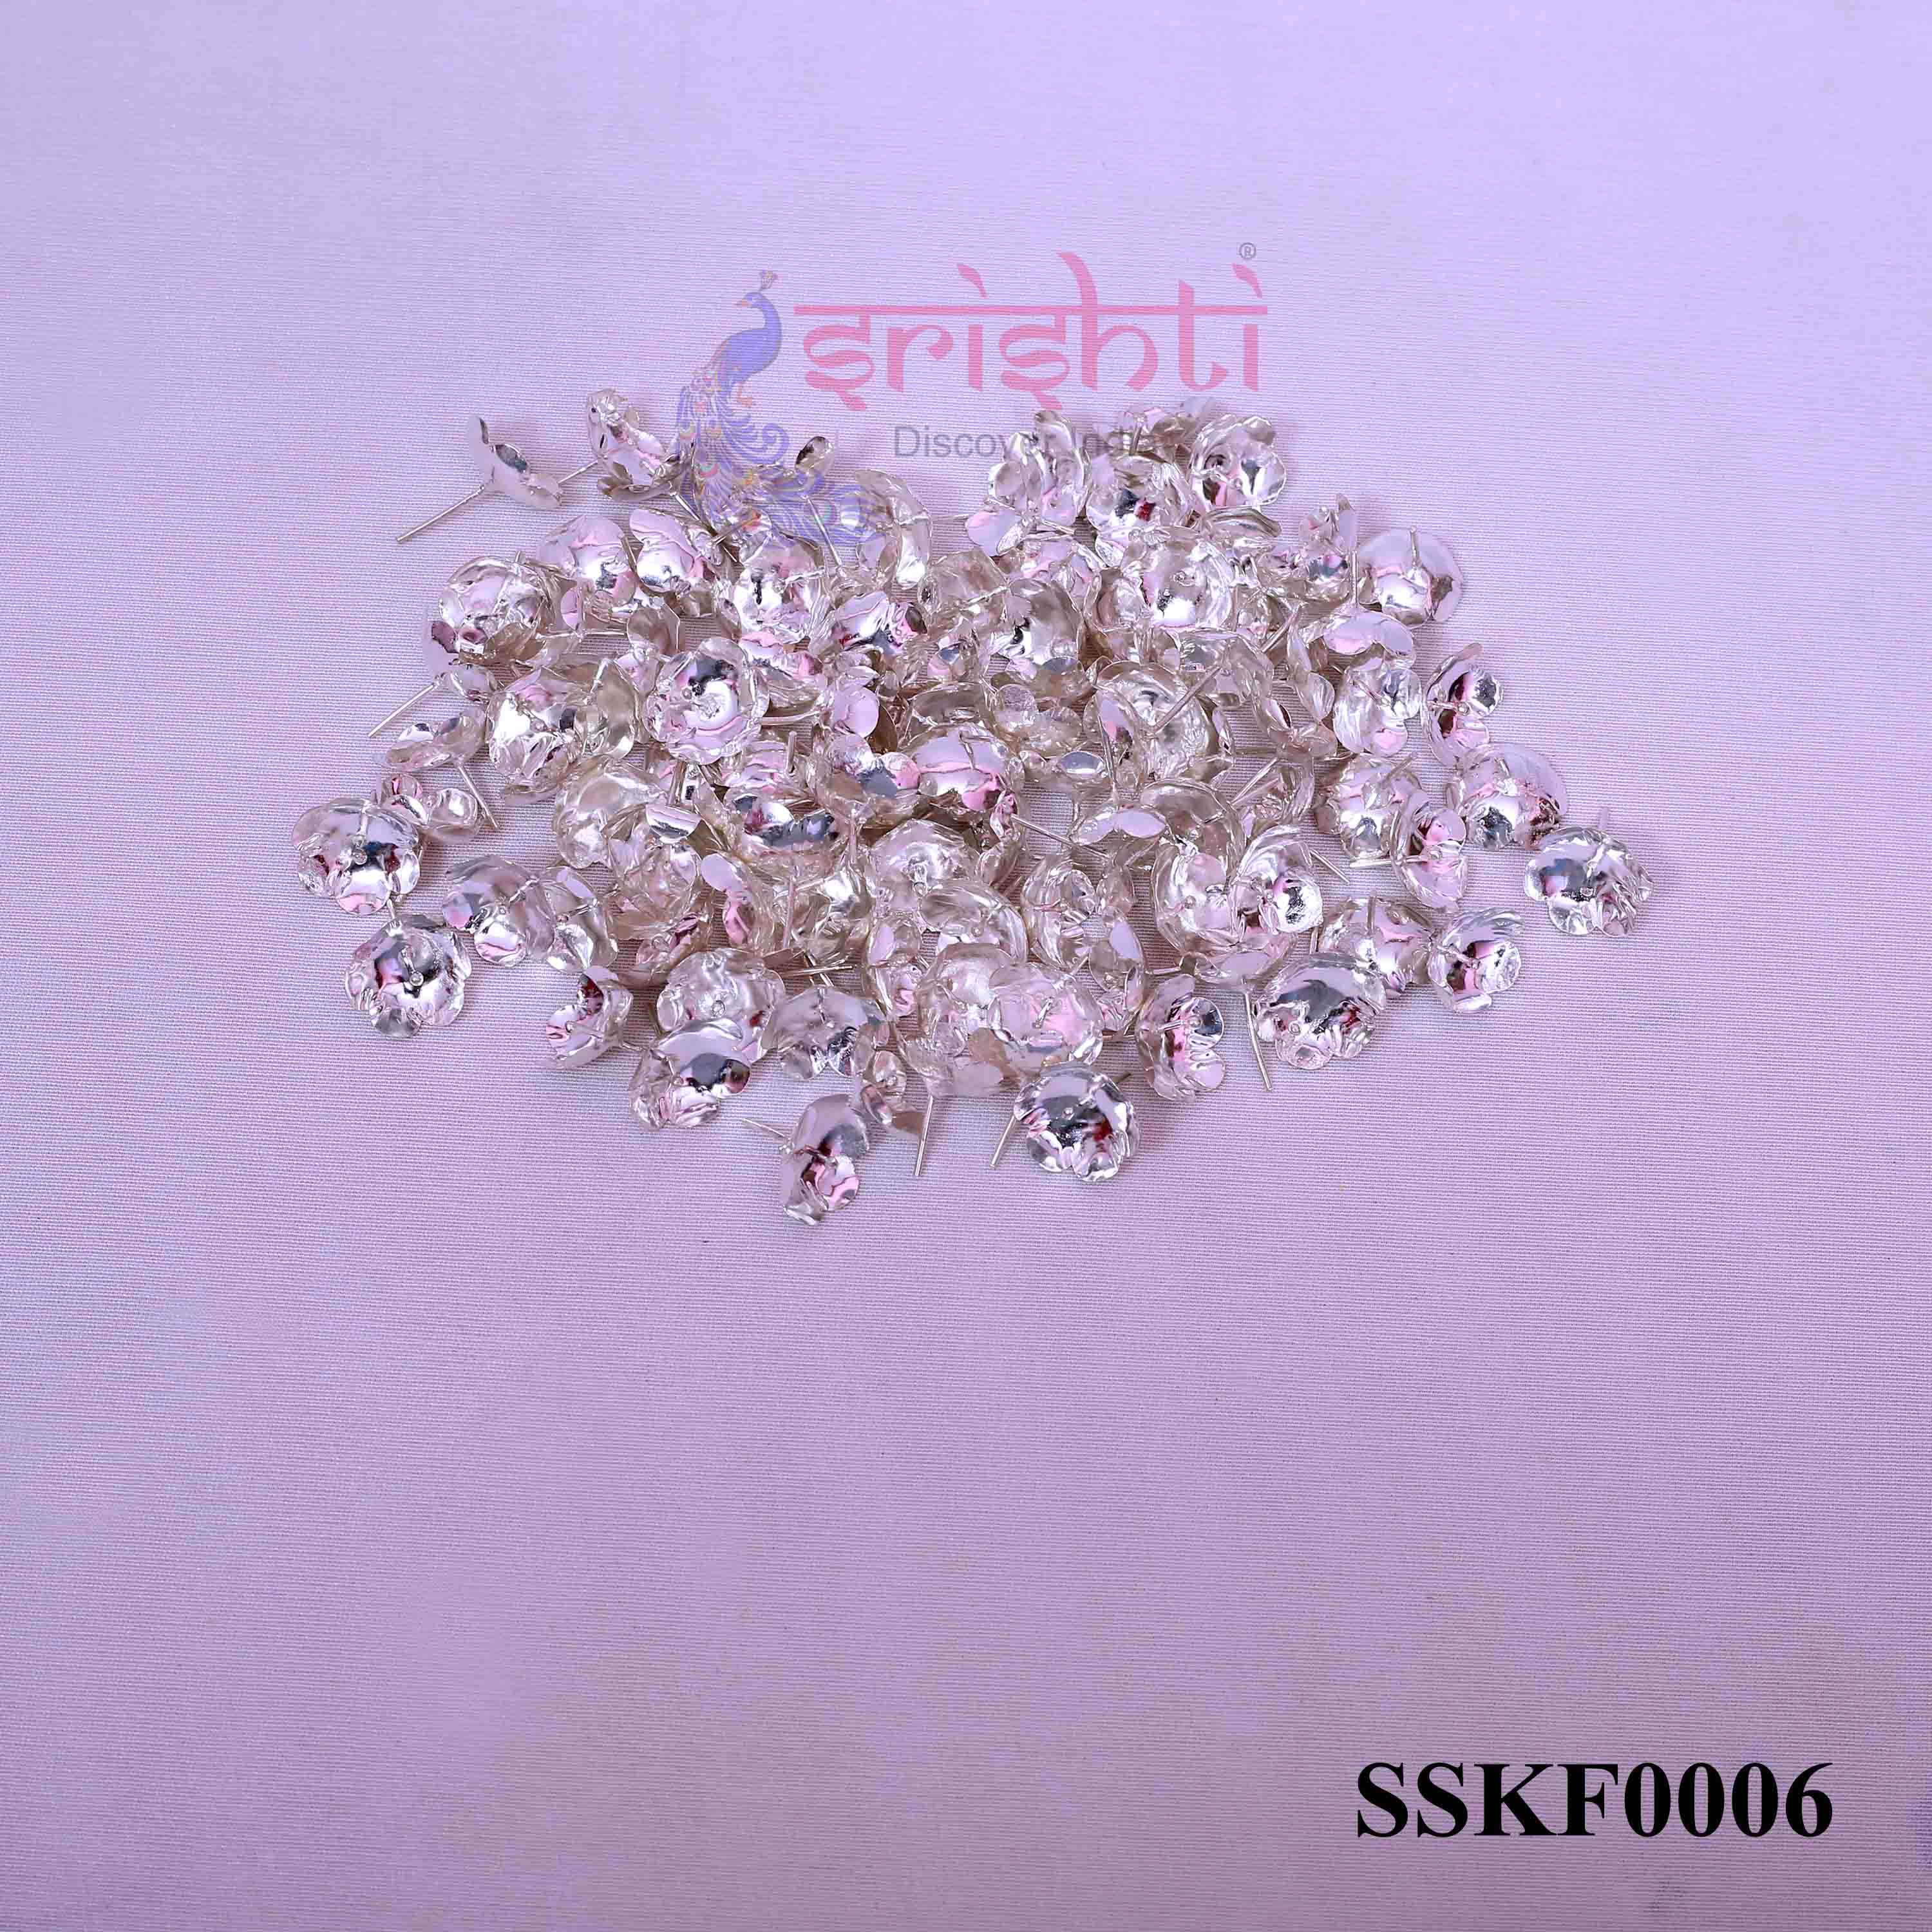 SSSD-Pure Silver Archana Flowers-Pack of 110-M05